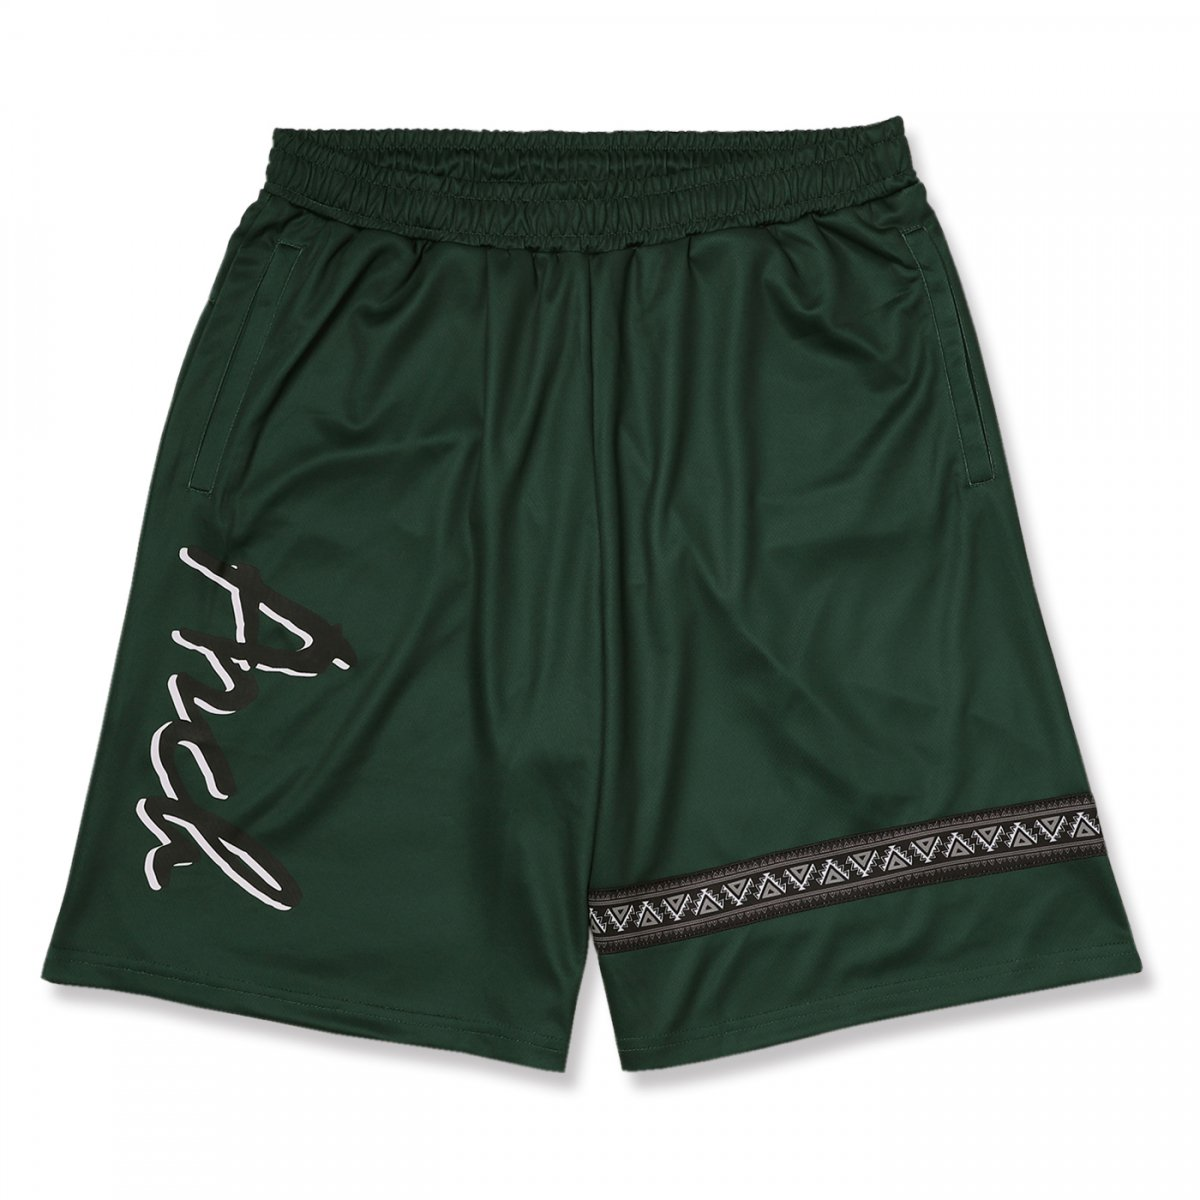 ethnic line shorts【green】